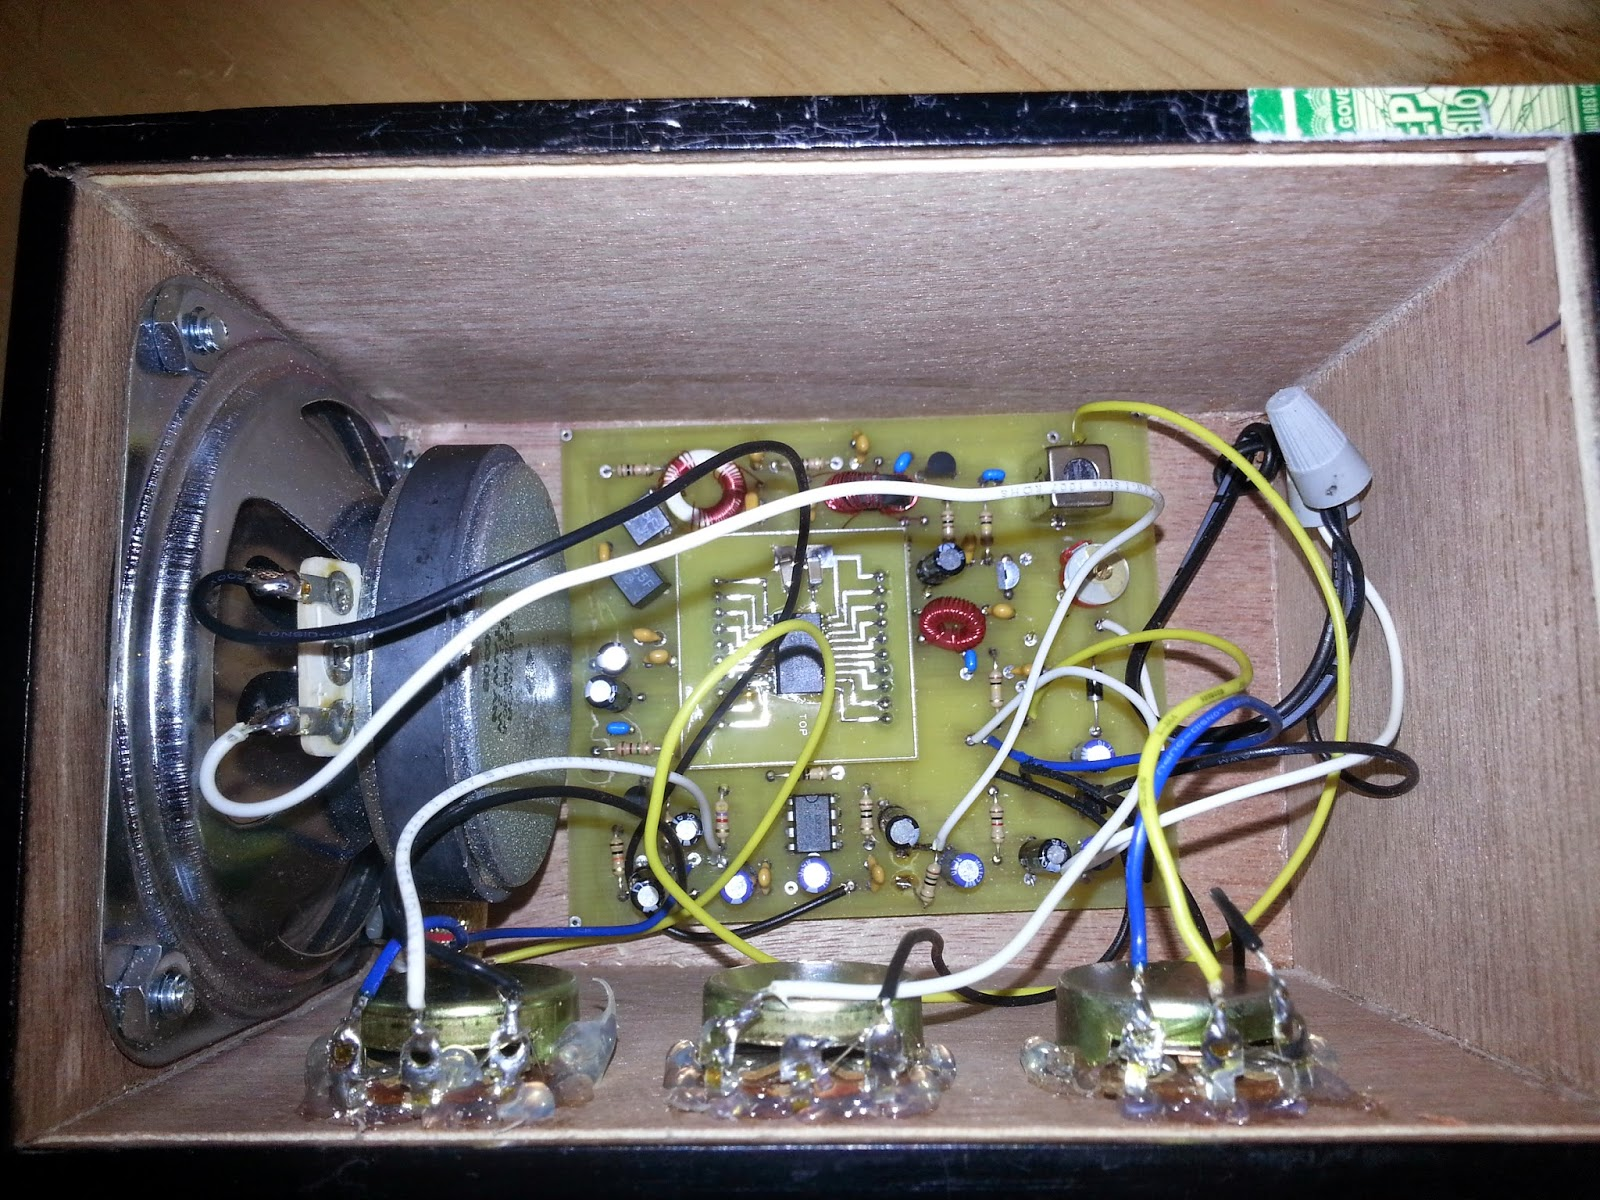 Jarrets Electronic Hobby Blog Superheterodyne Shortwave Receiver How It39s Made Electrical Wires Youtube The Board Was Created For A Class To Use Which Included Instructions Tda1572 An Smd Chip Soldered On Its Own